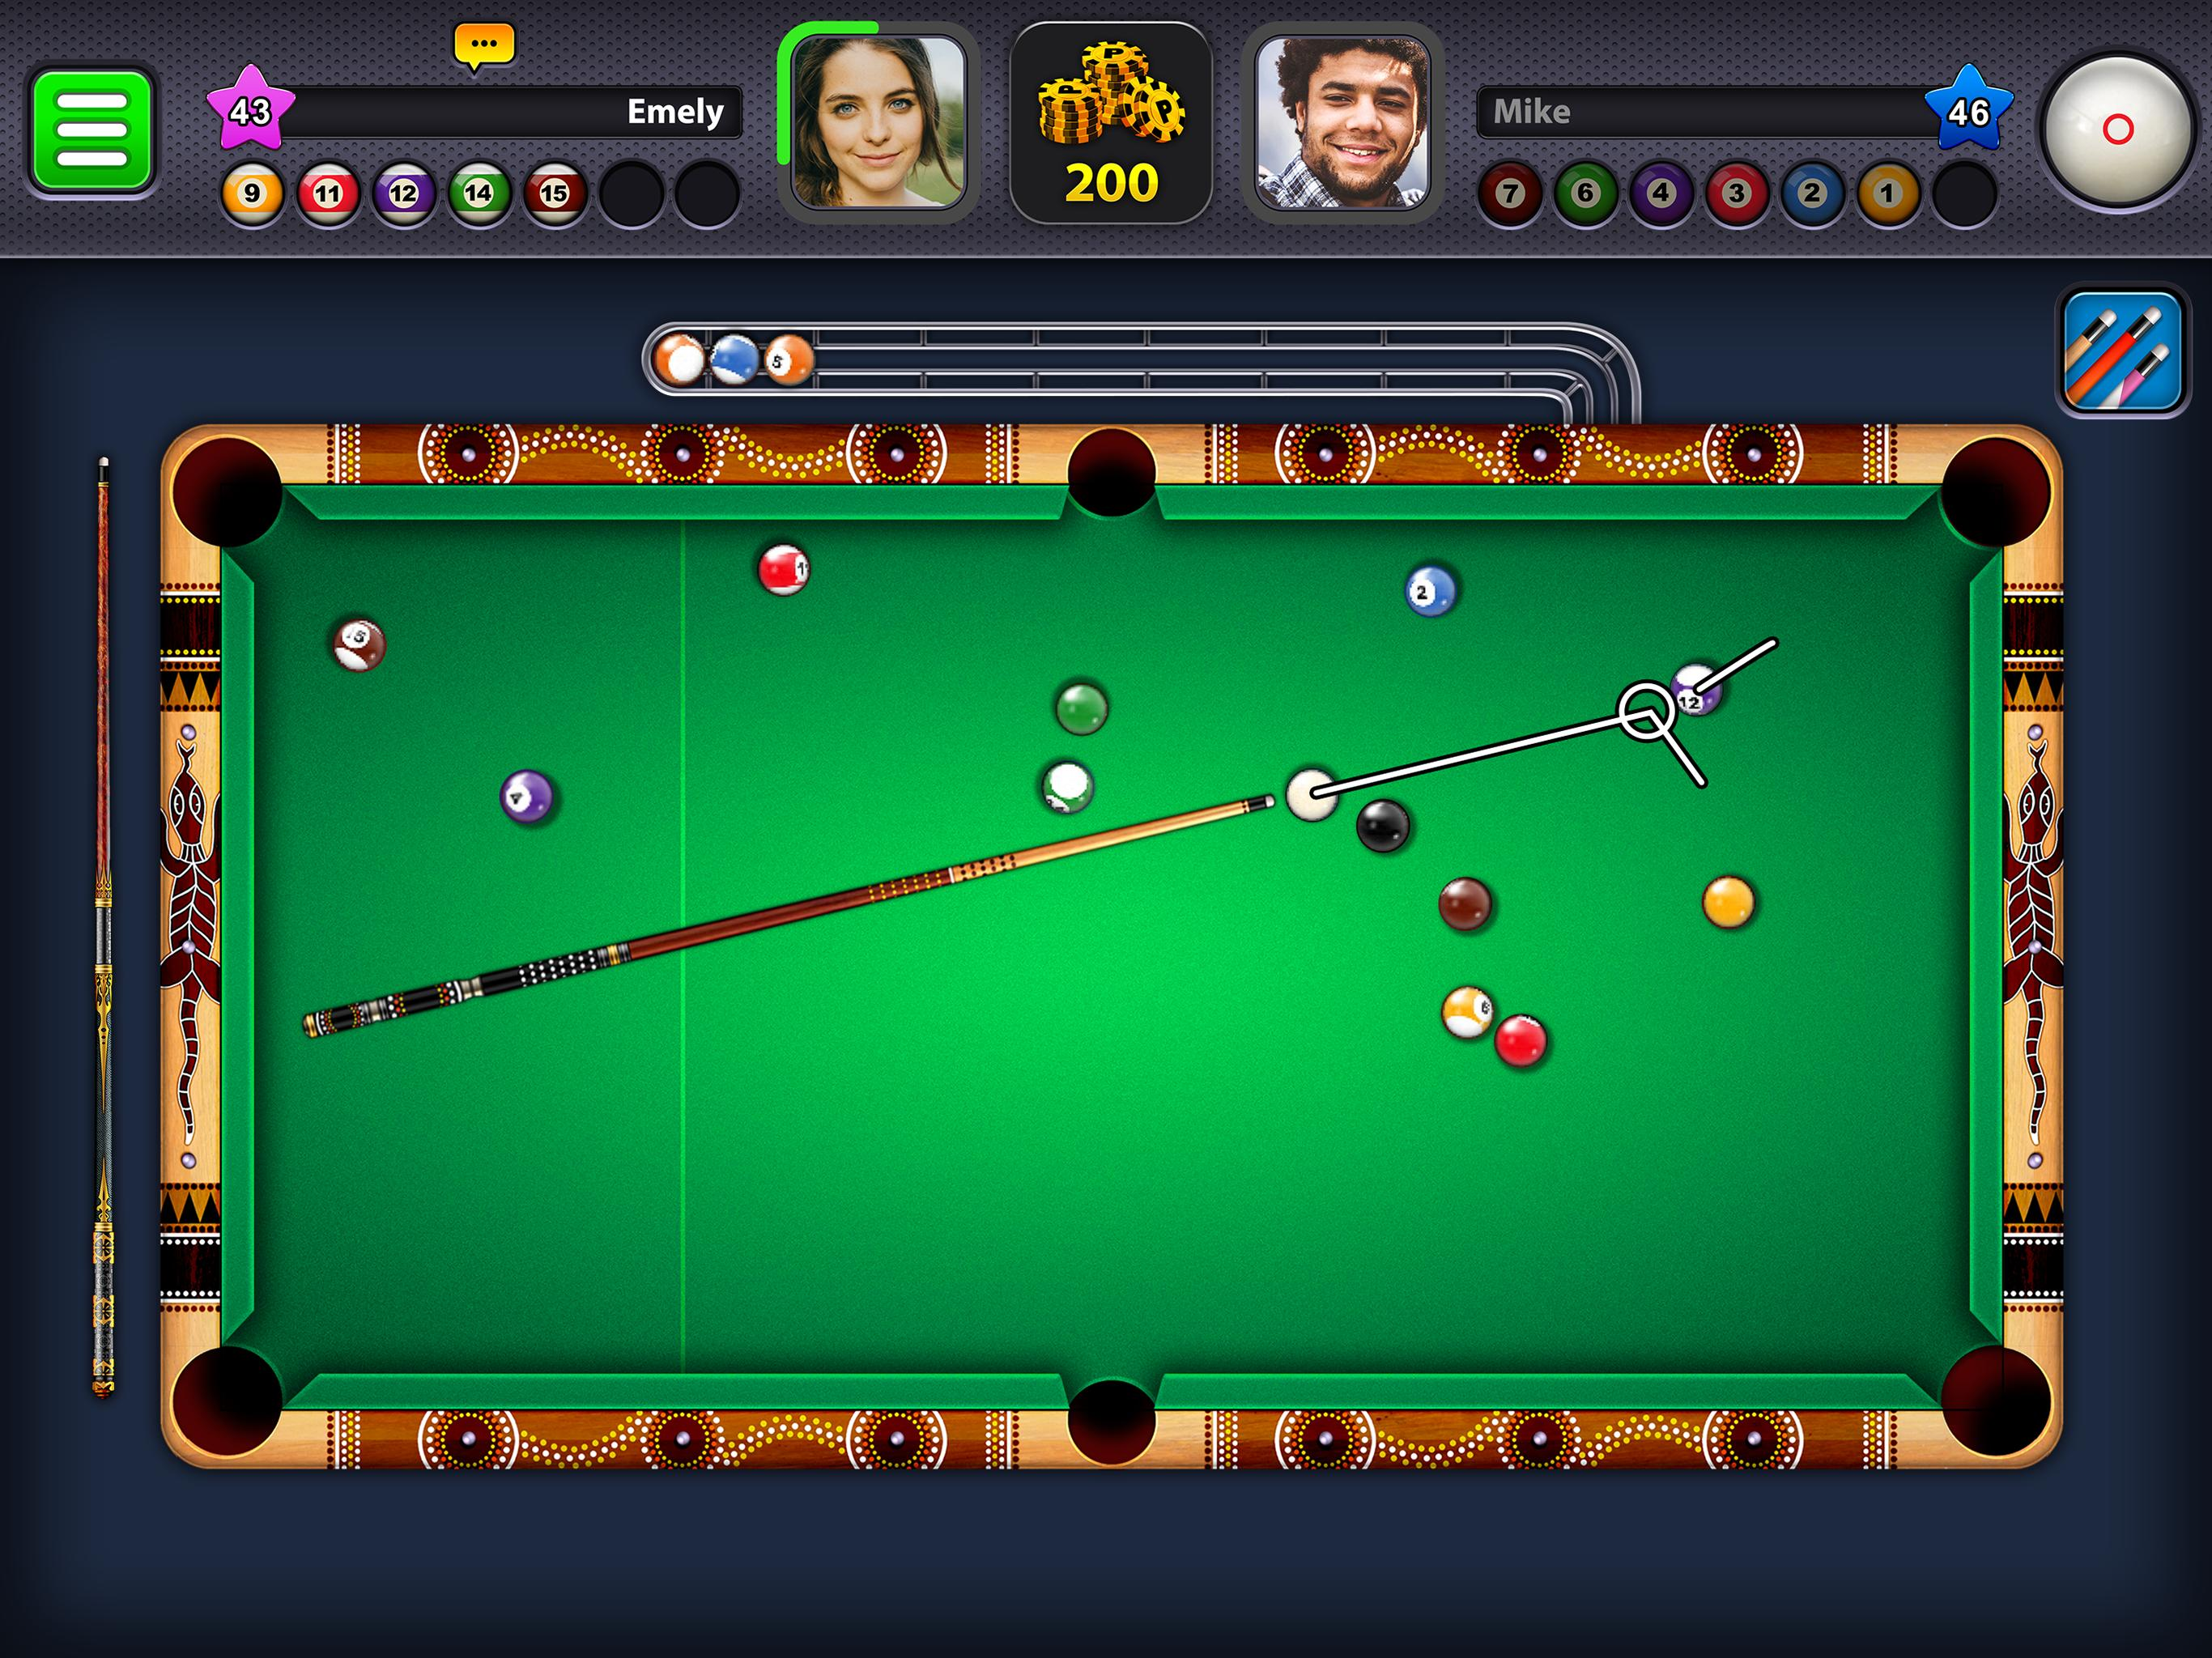 8 ball pool game free download for mobile